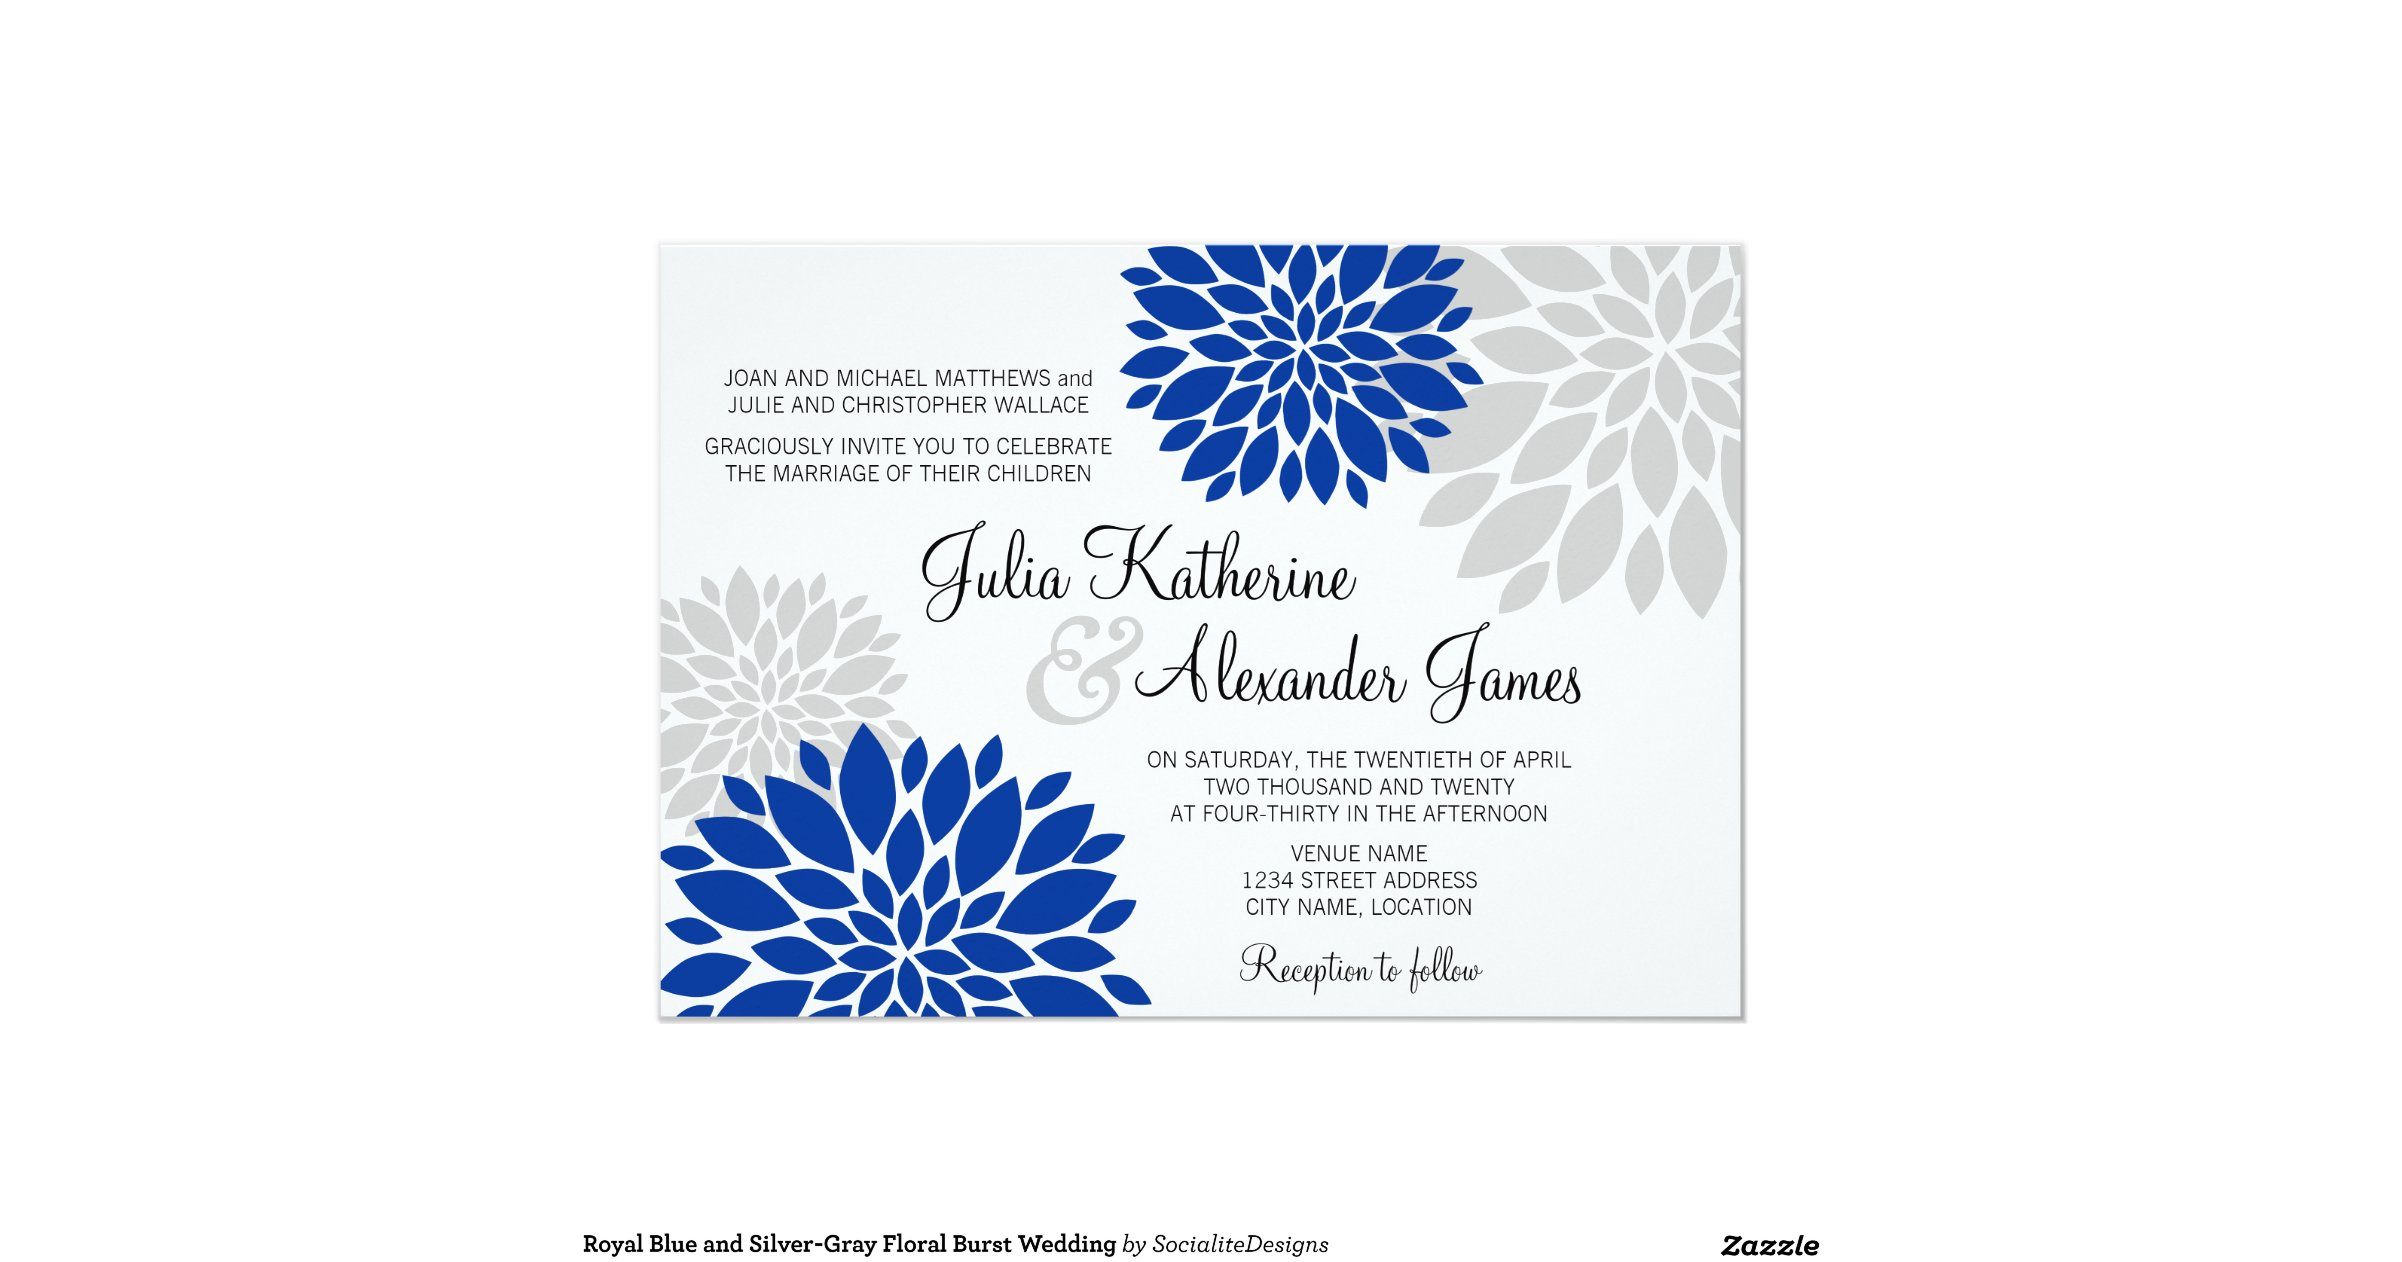 Wedding Invitations Royal Blue And Silver: Royal_blue_and_silver_gray_floral_burst_wedding_5x7_paper